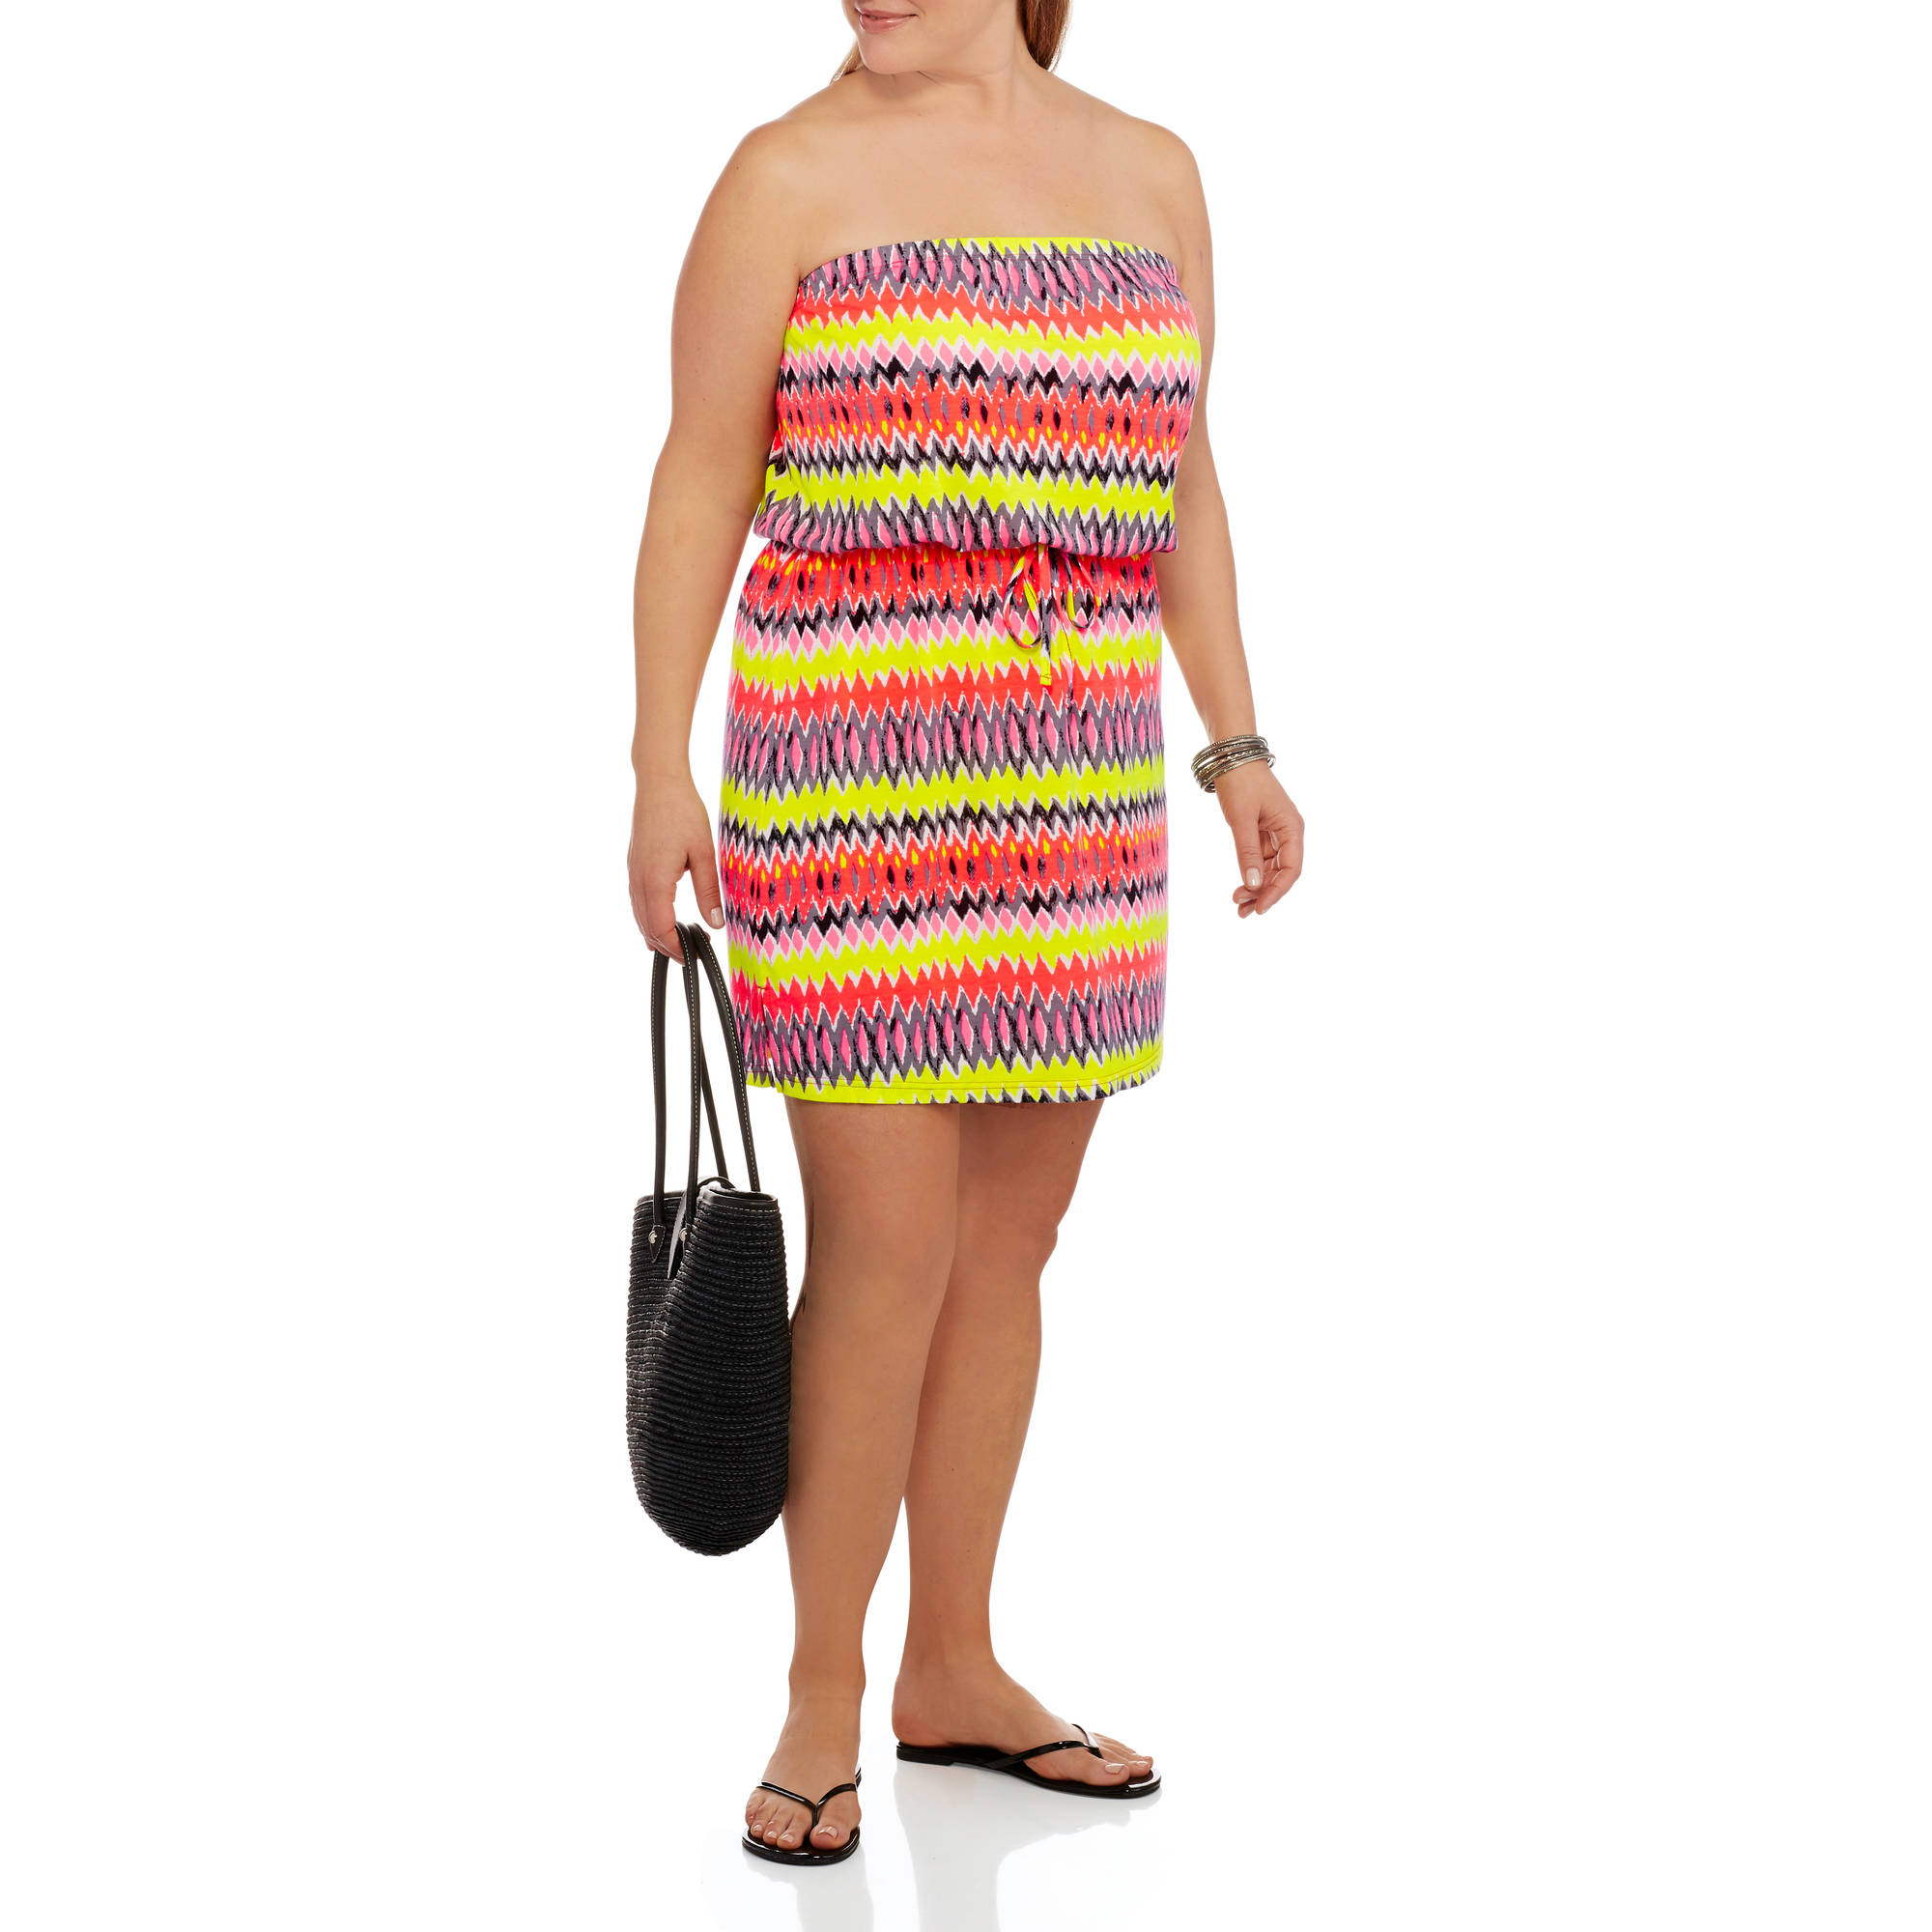 Concepts Women's Plus-Size Tank Dress with Removable Straps and Elastic Tie Front Waist